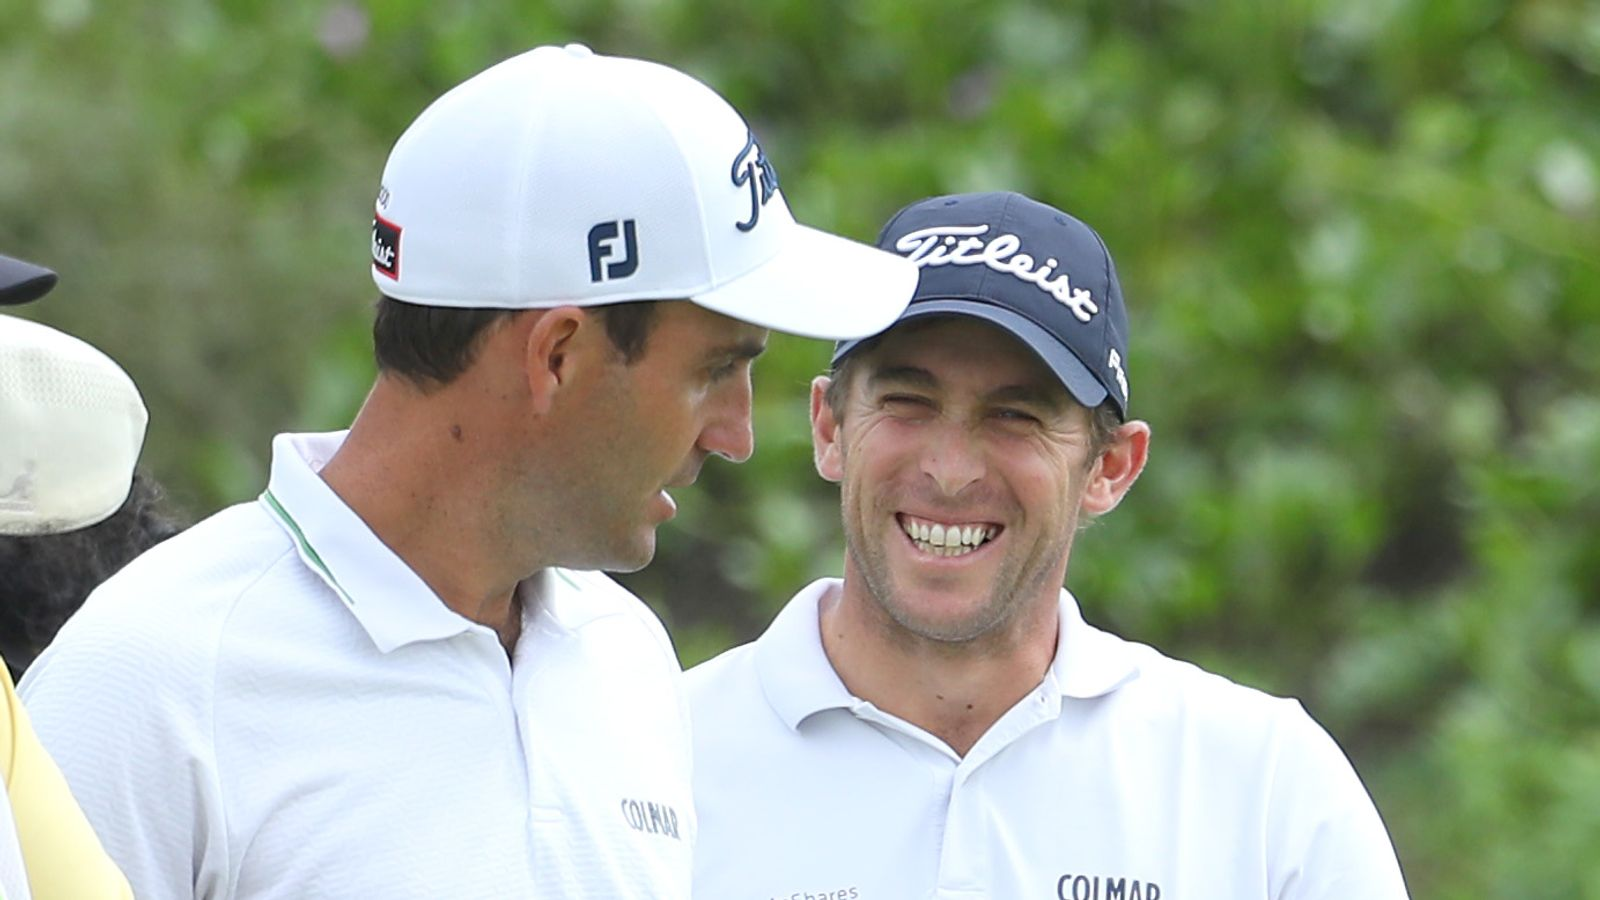 Edoardo Molinari relieved after 'scary' coronavirus incident